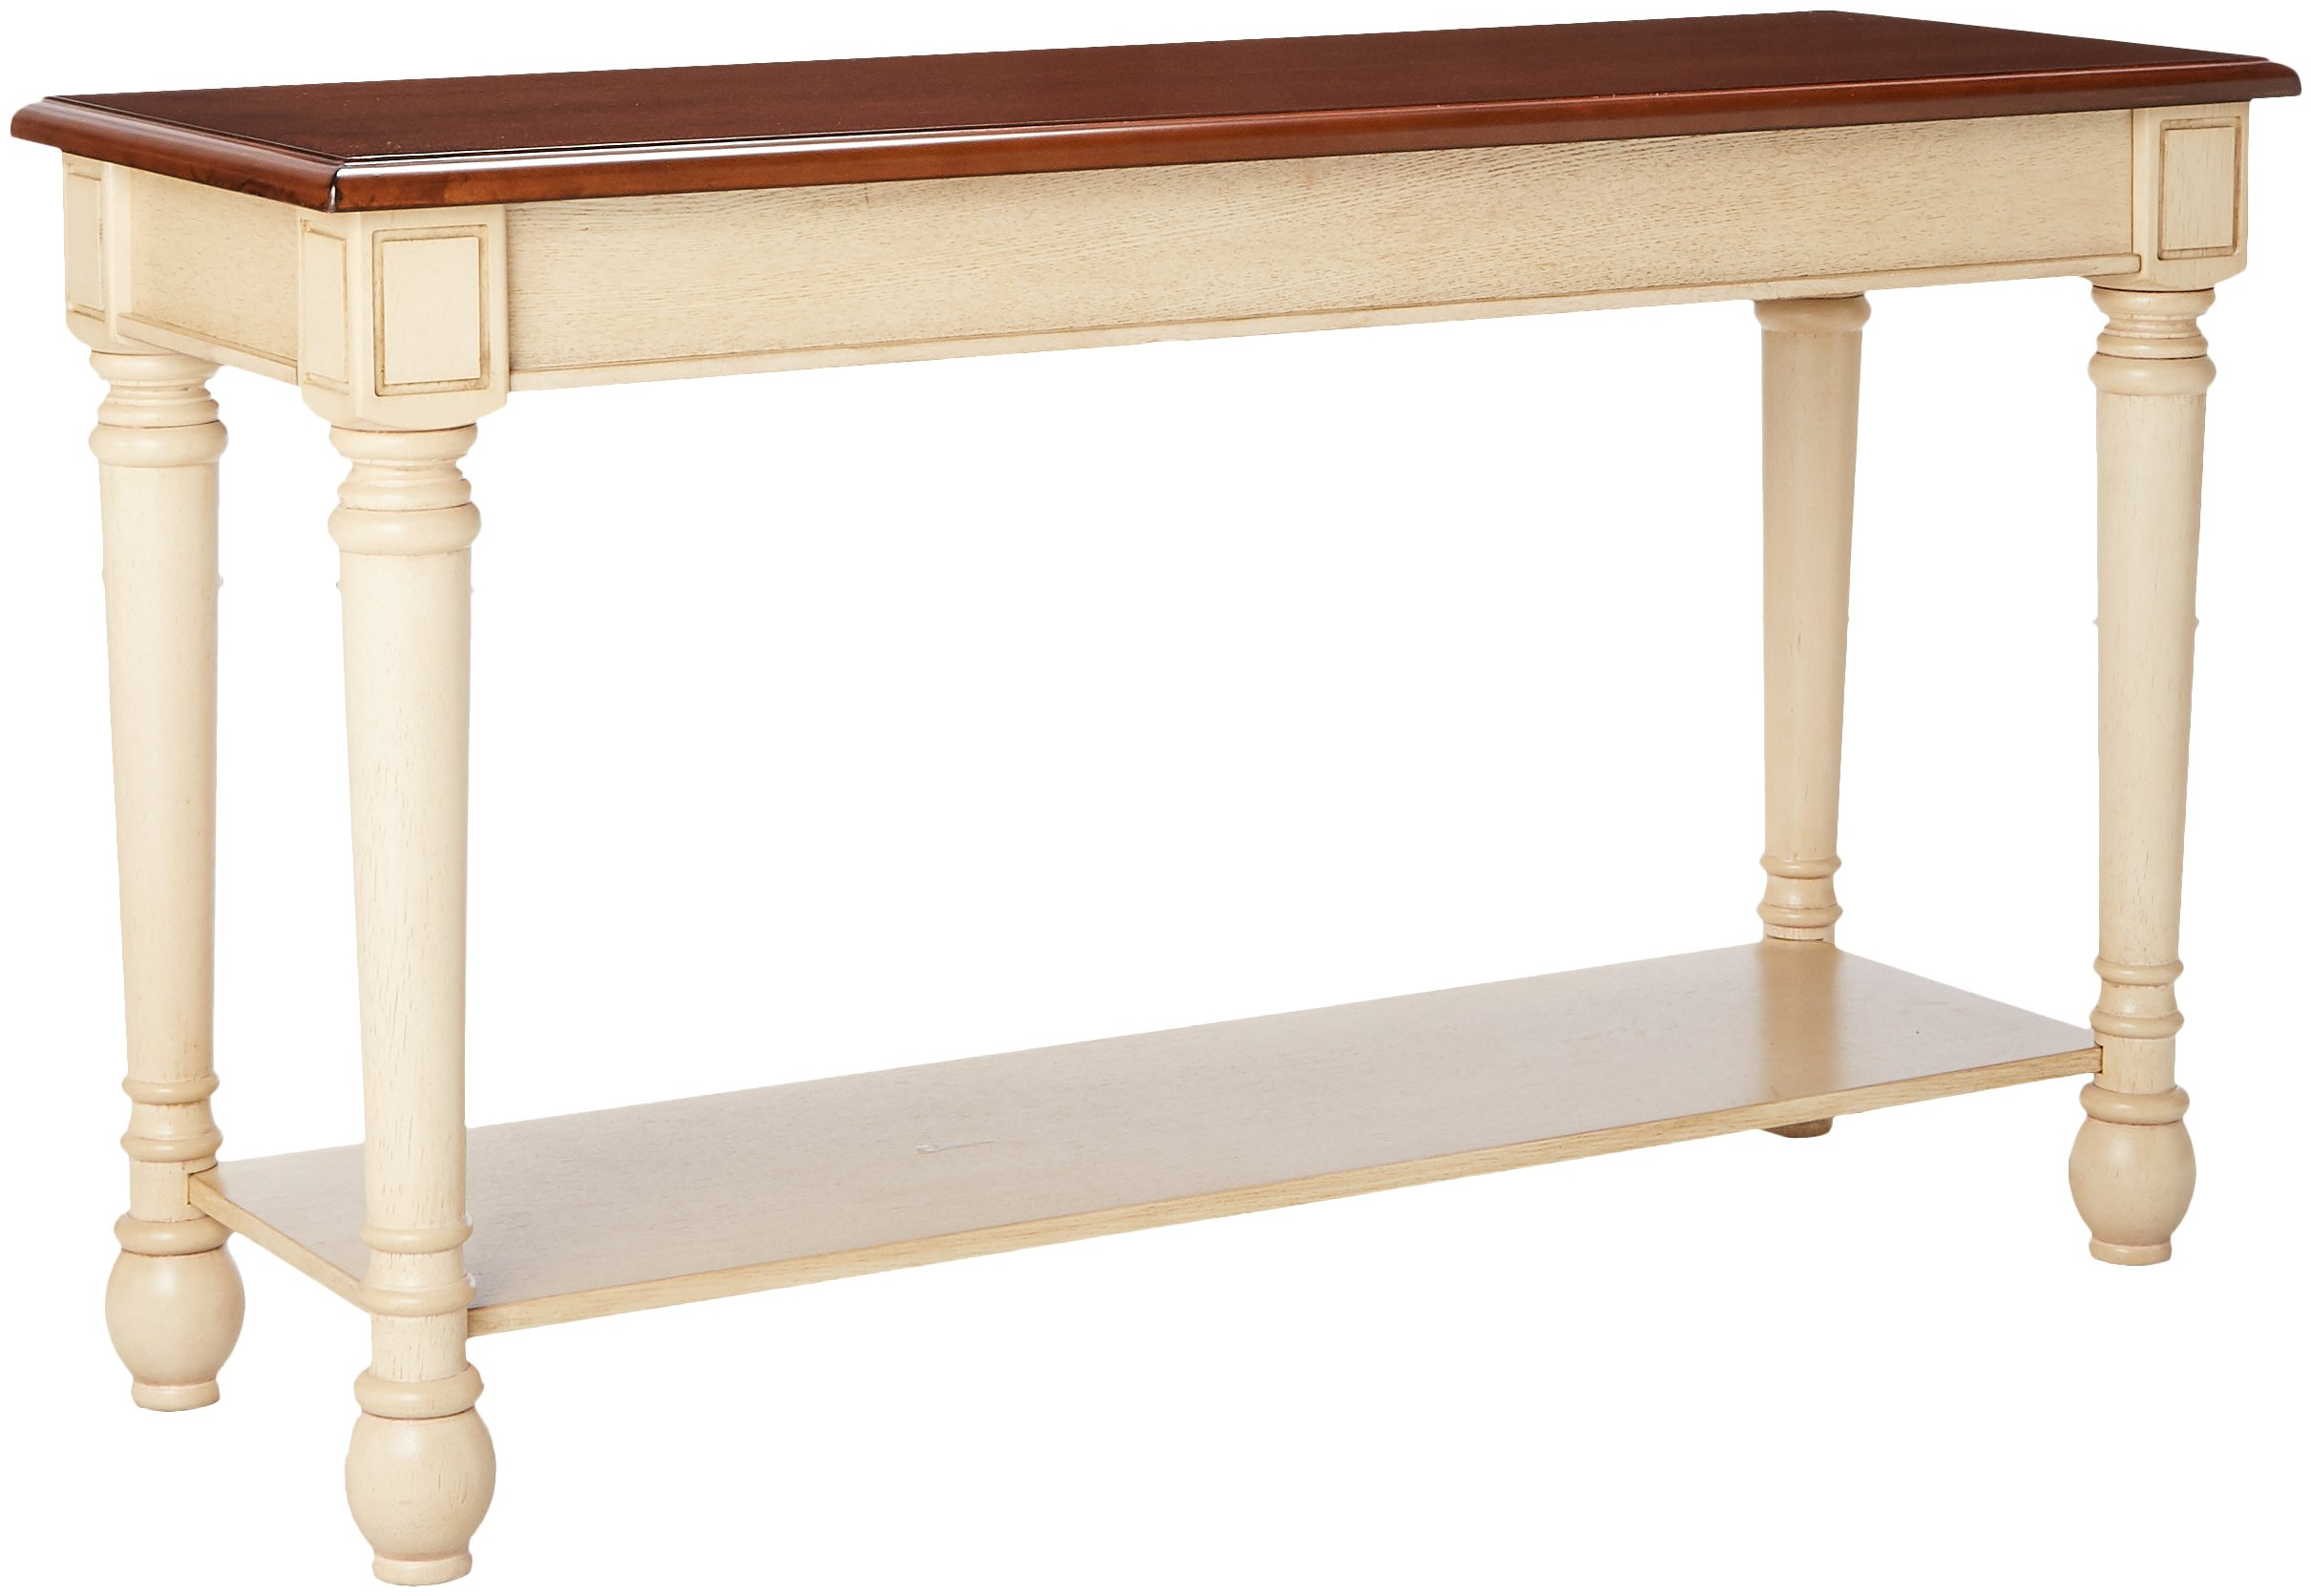 Coaster Home Furnishings 704419 Sofa Table, NULL, Dark Cherry/Antique White